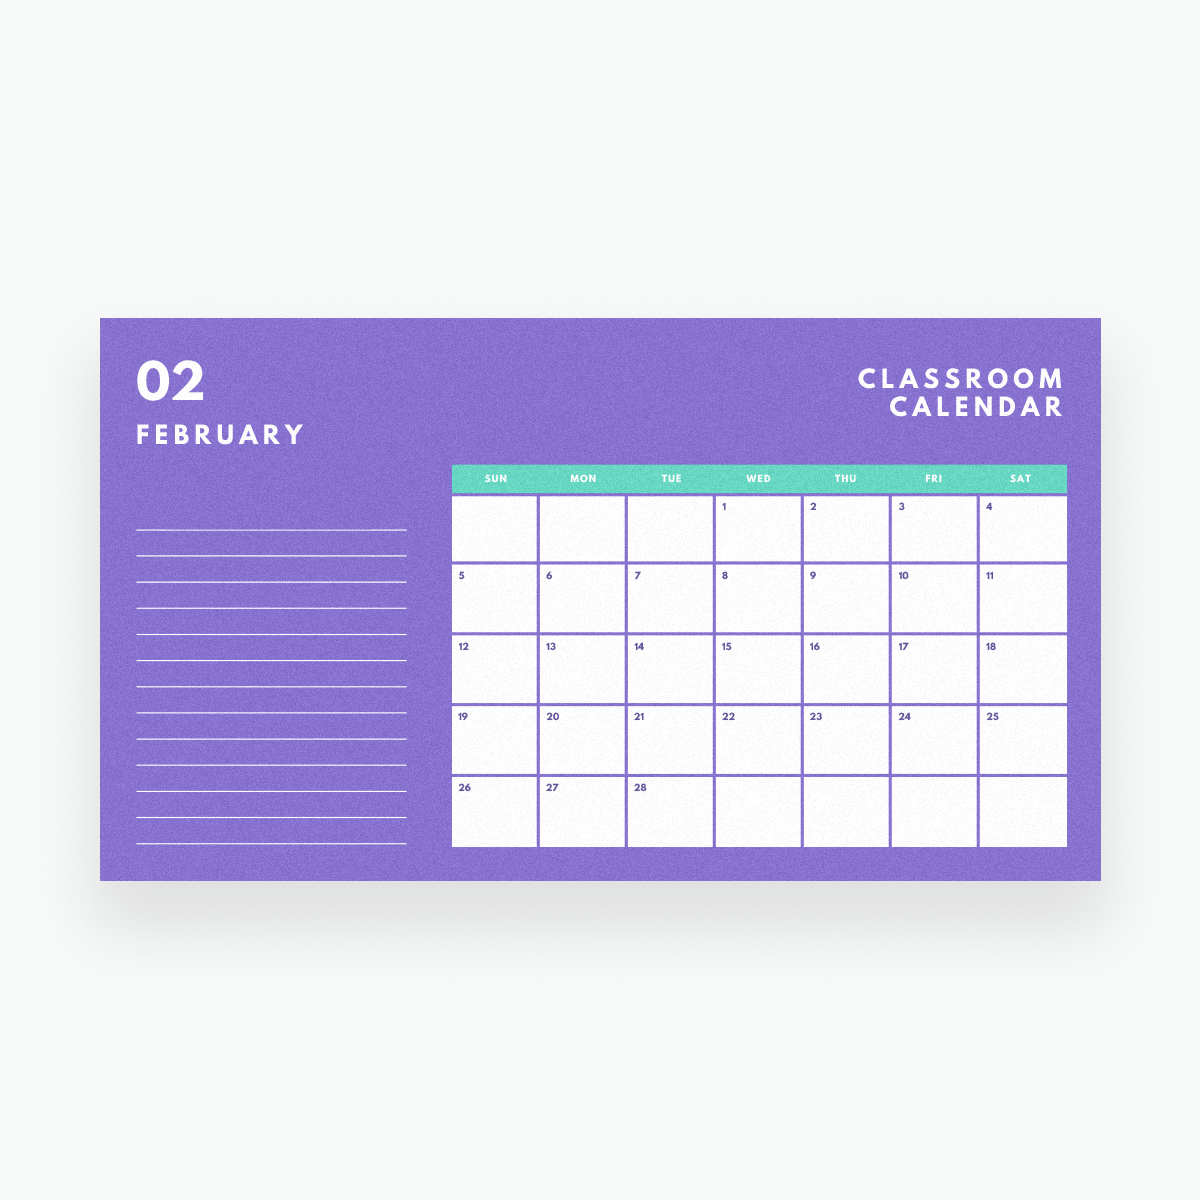 Free Online Calendar Maker: Design A Custom Calendar  Canva with regard to Calendar Date Icon Generator